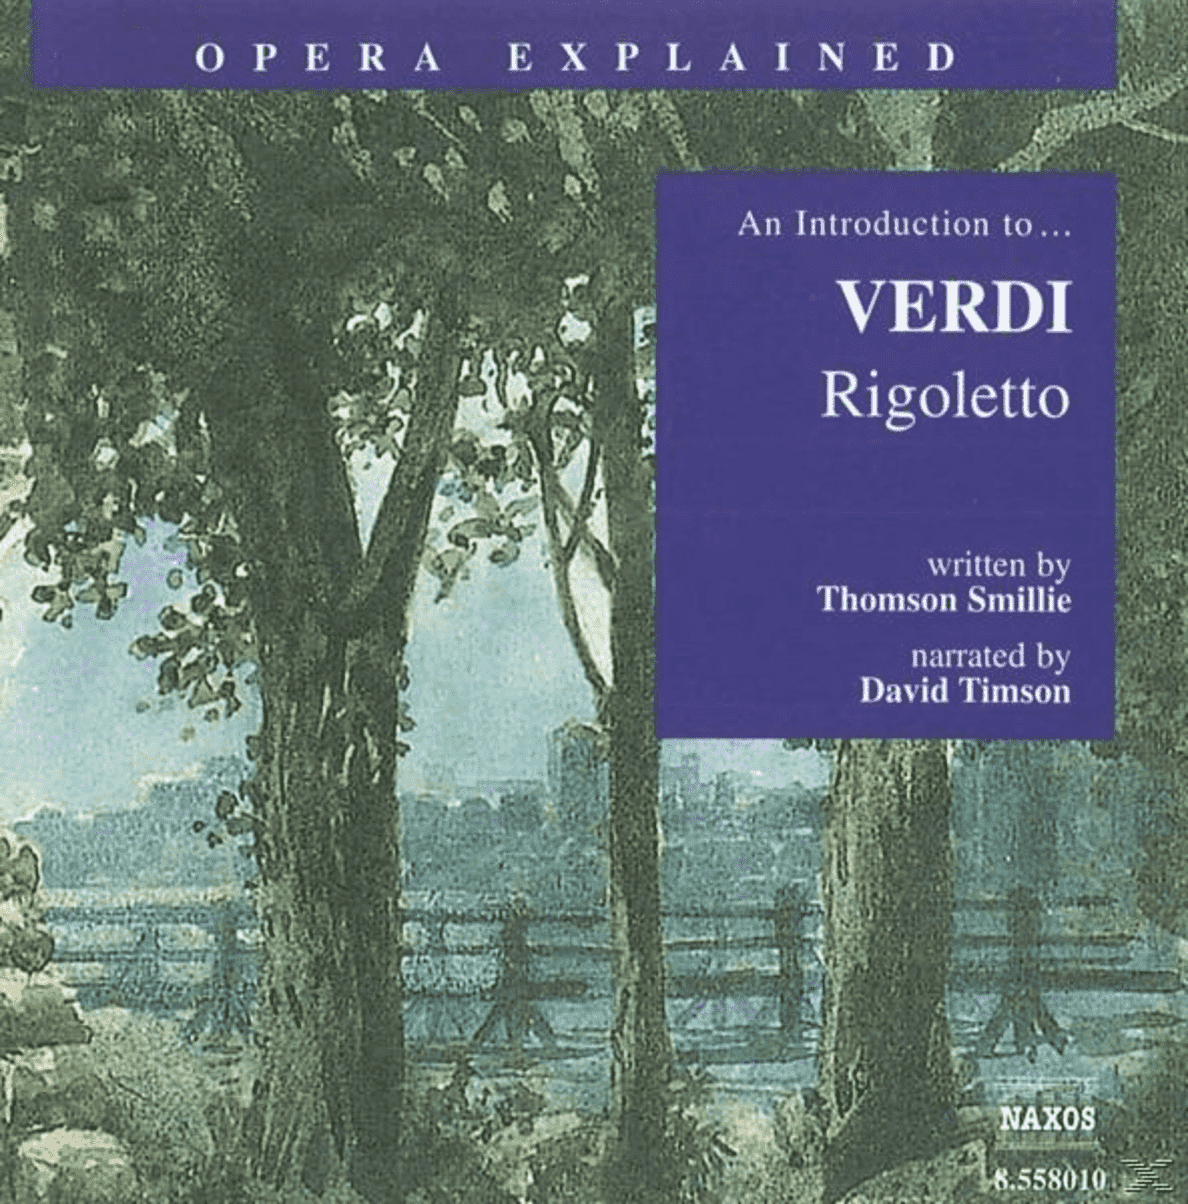 VARIOUS, David Timson Introduction To Rigoletto Hörbuch